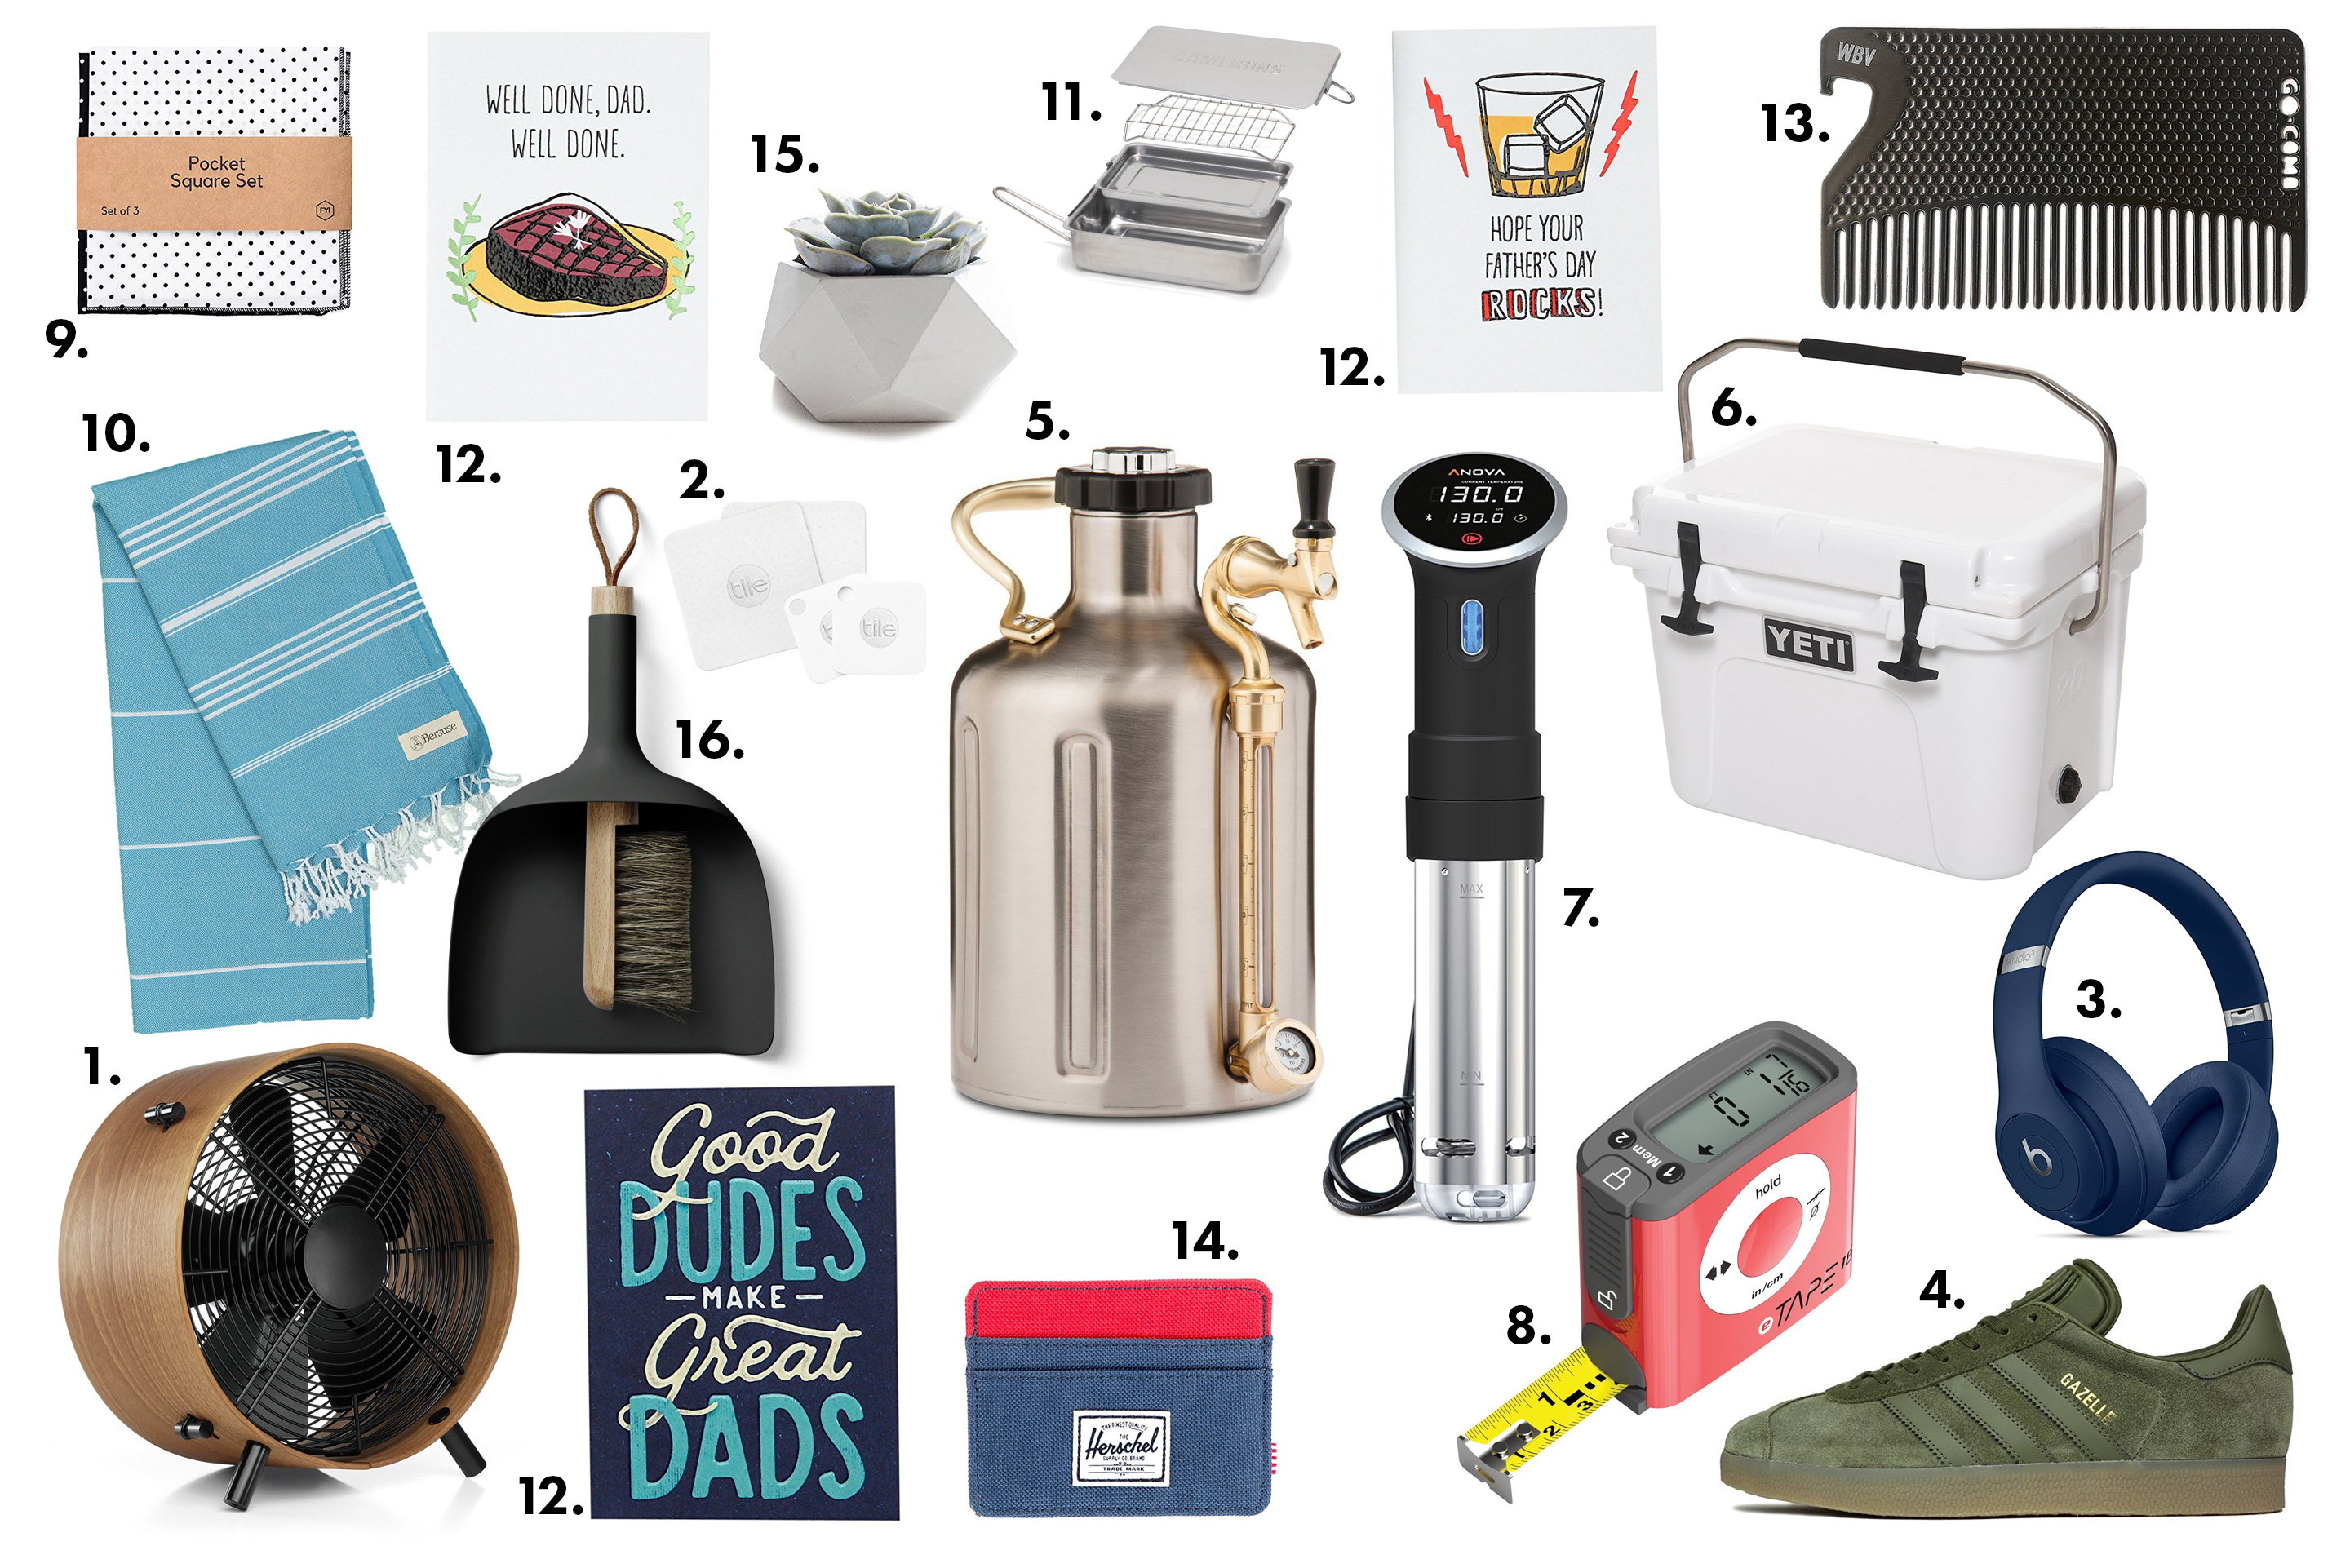 Christmas Gifts For Dad 2018.Good Gifts For Dad 2018 Panglimaword Co